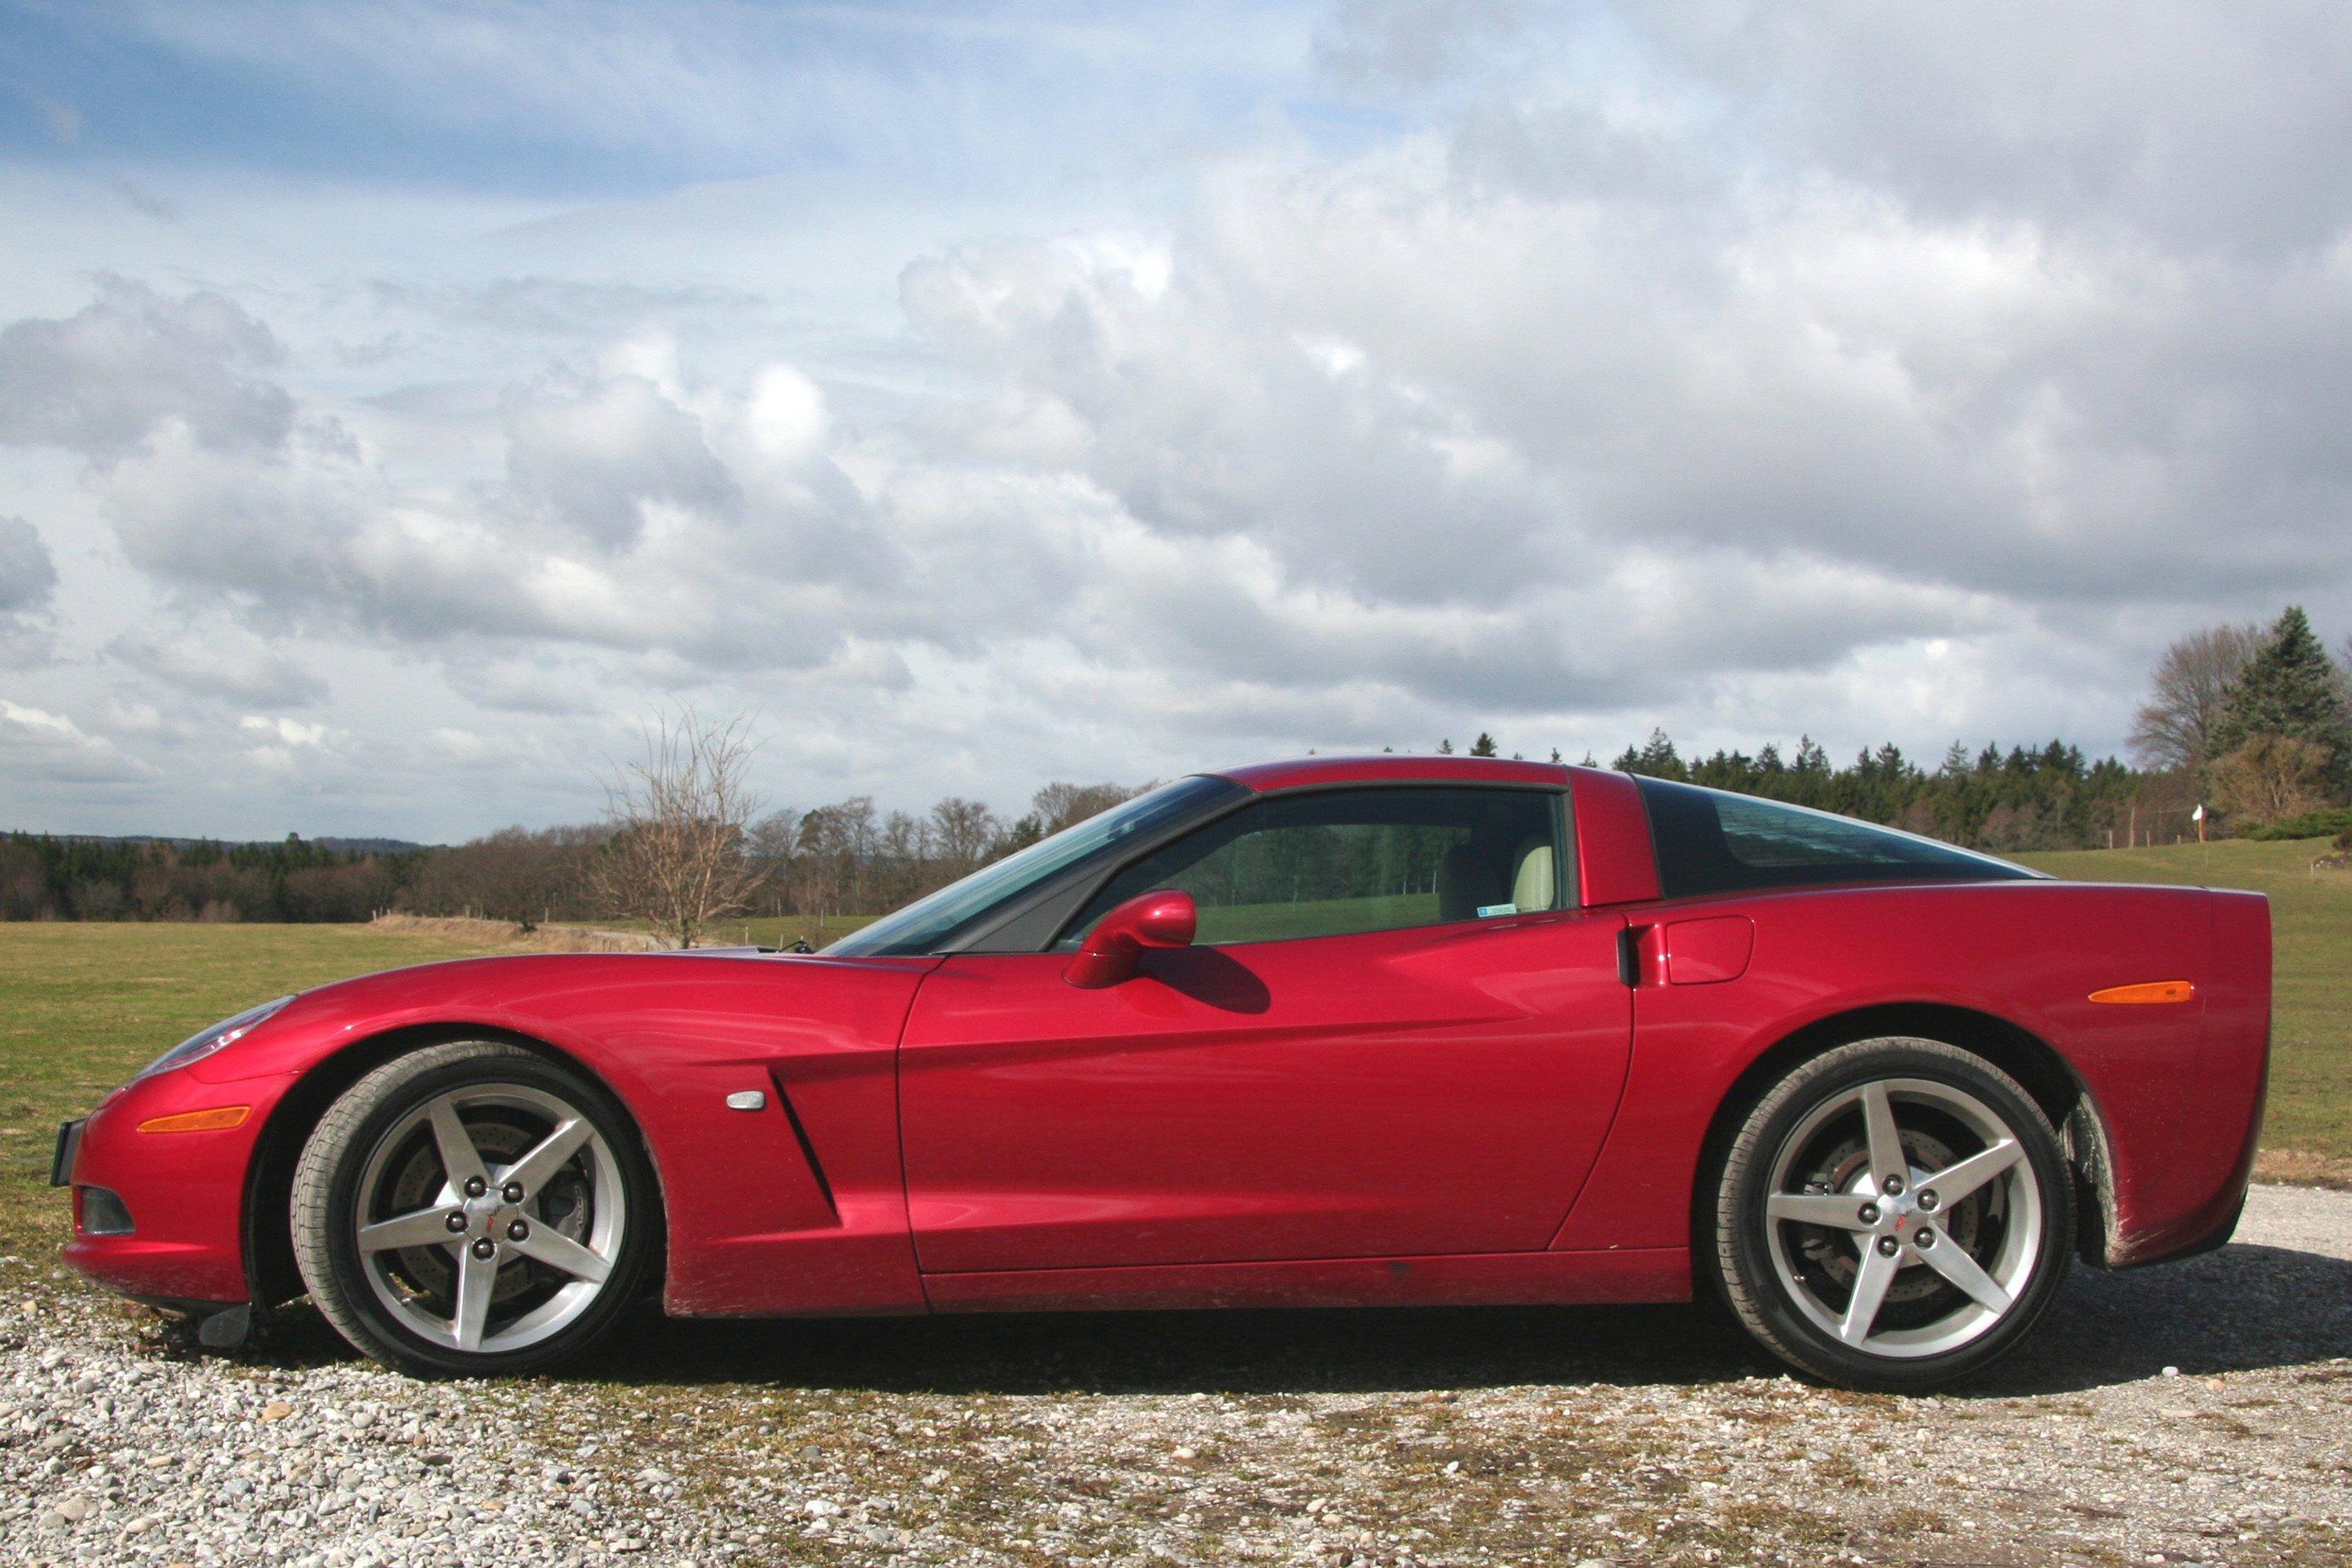 2006 c6 corvette ultimate guide overview specs vin info performance more. Black Bedroom Furniture Sets. Home Design Ideas